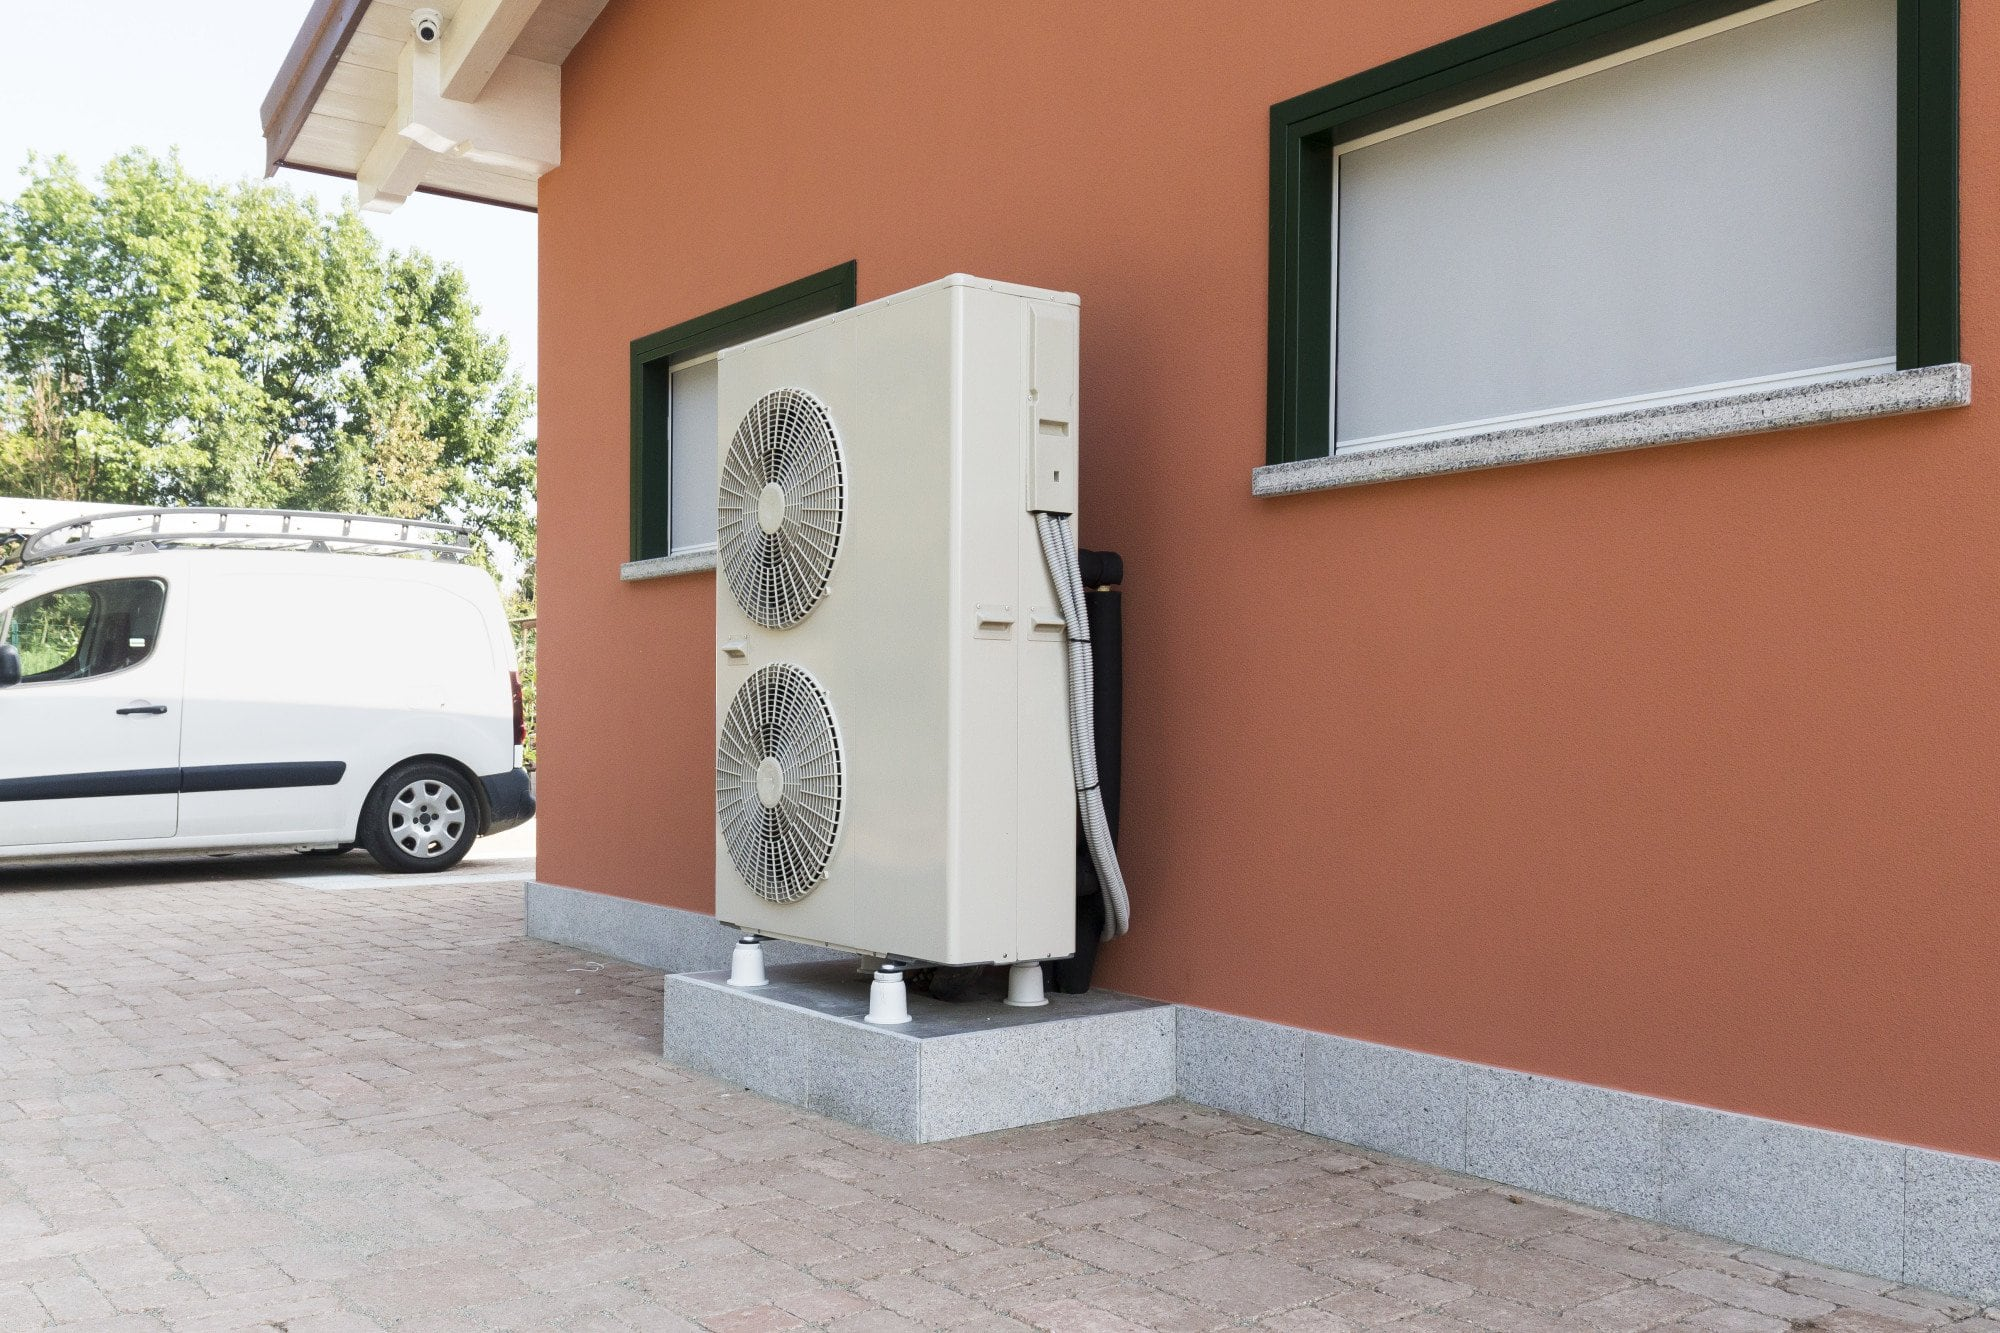 What is a Ductless Heat Pump, Anyway?